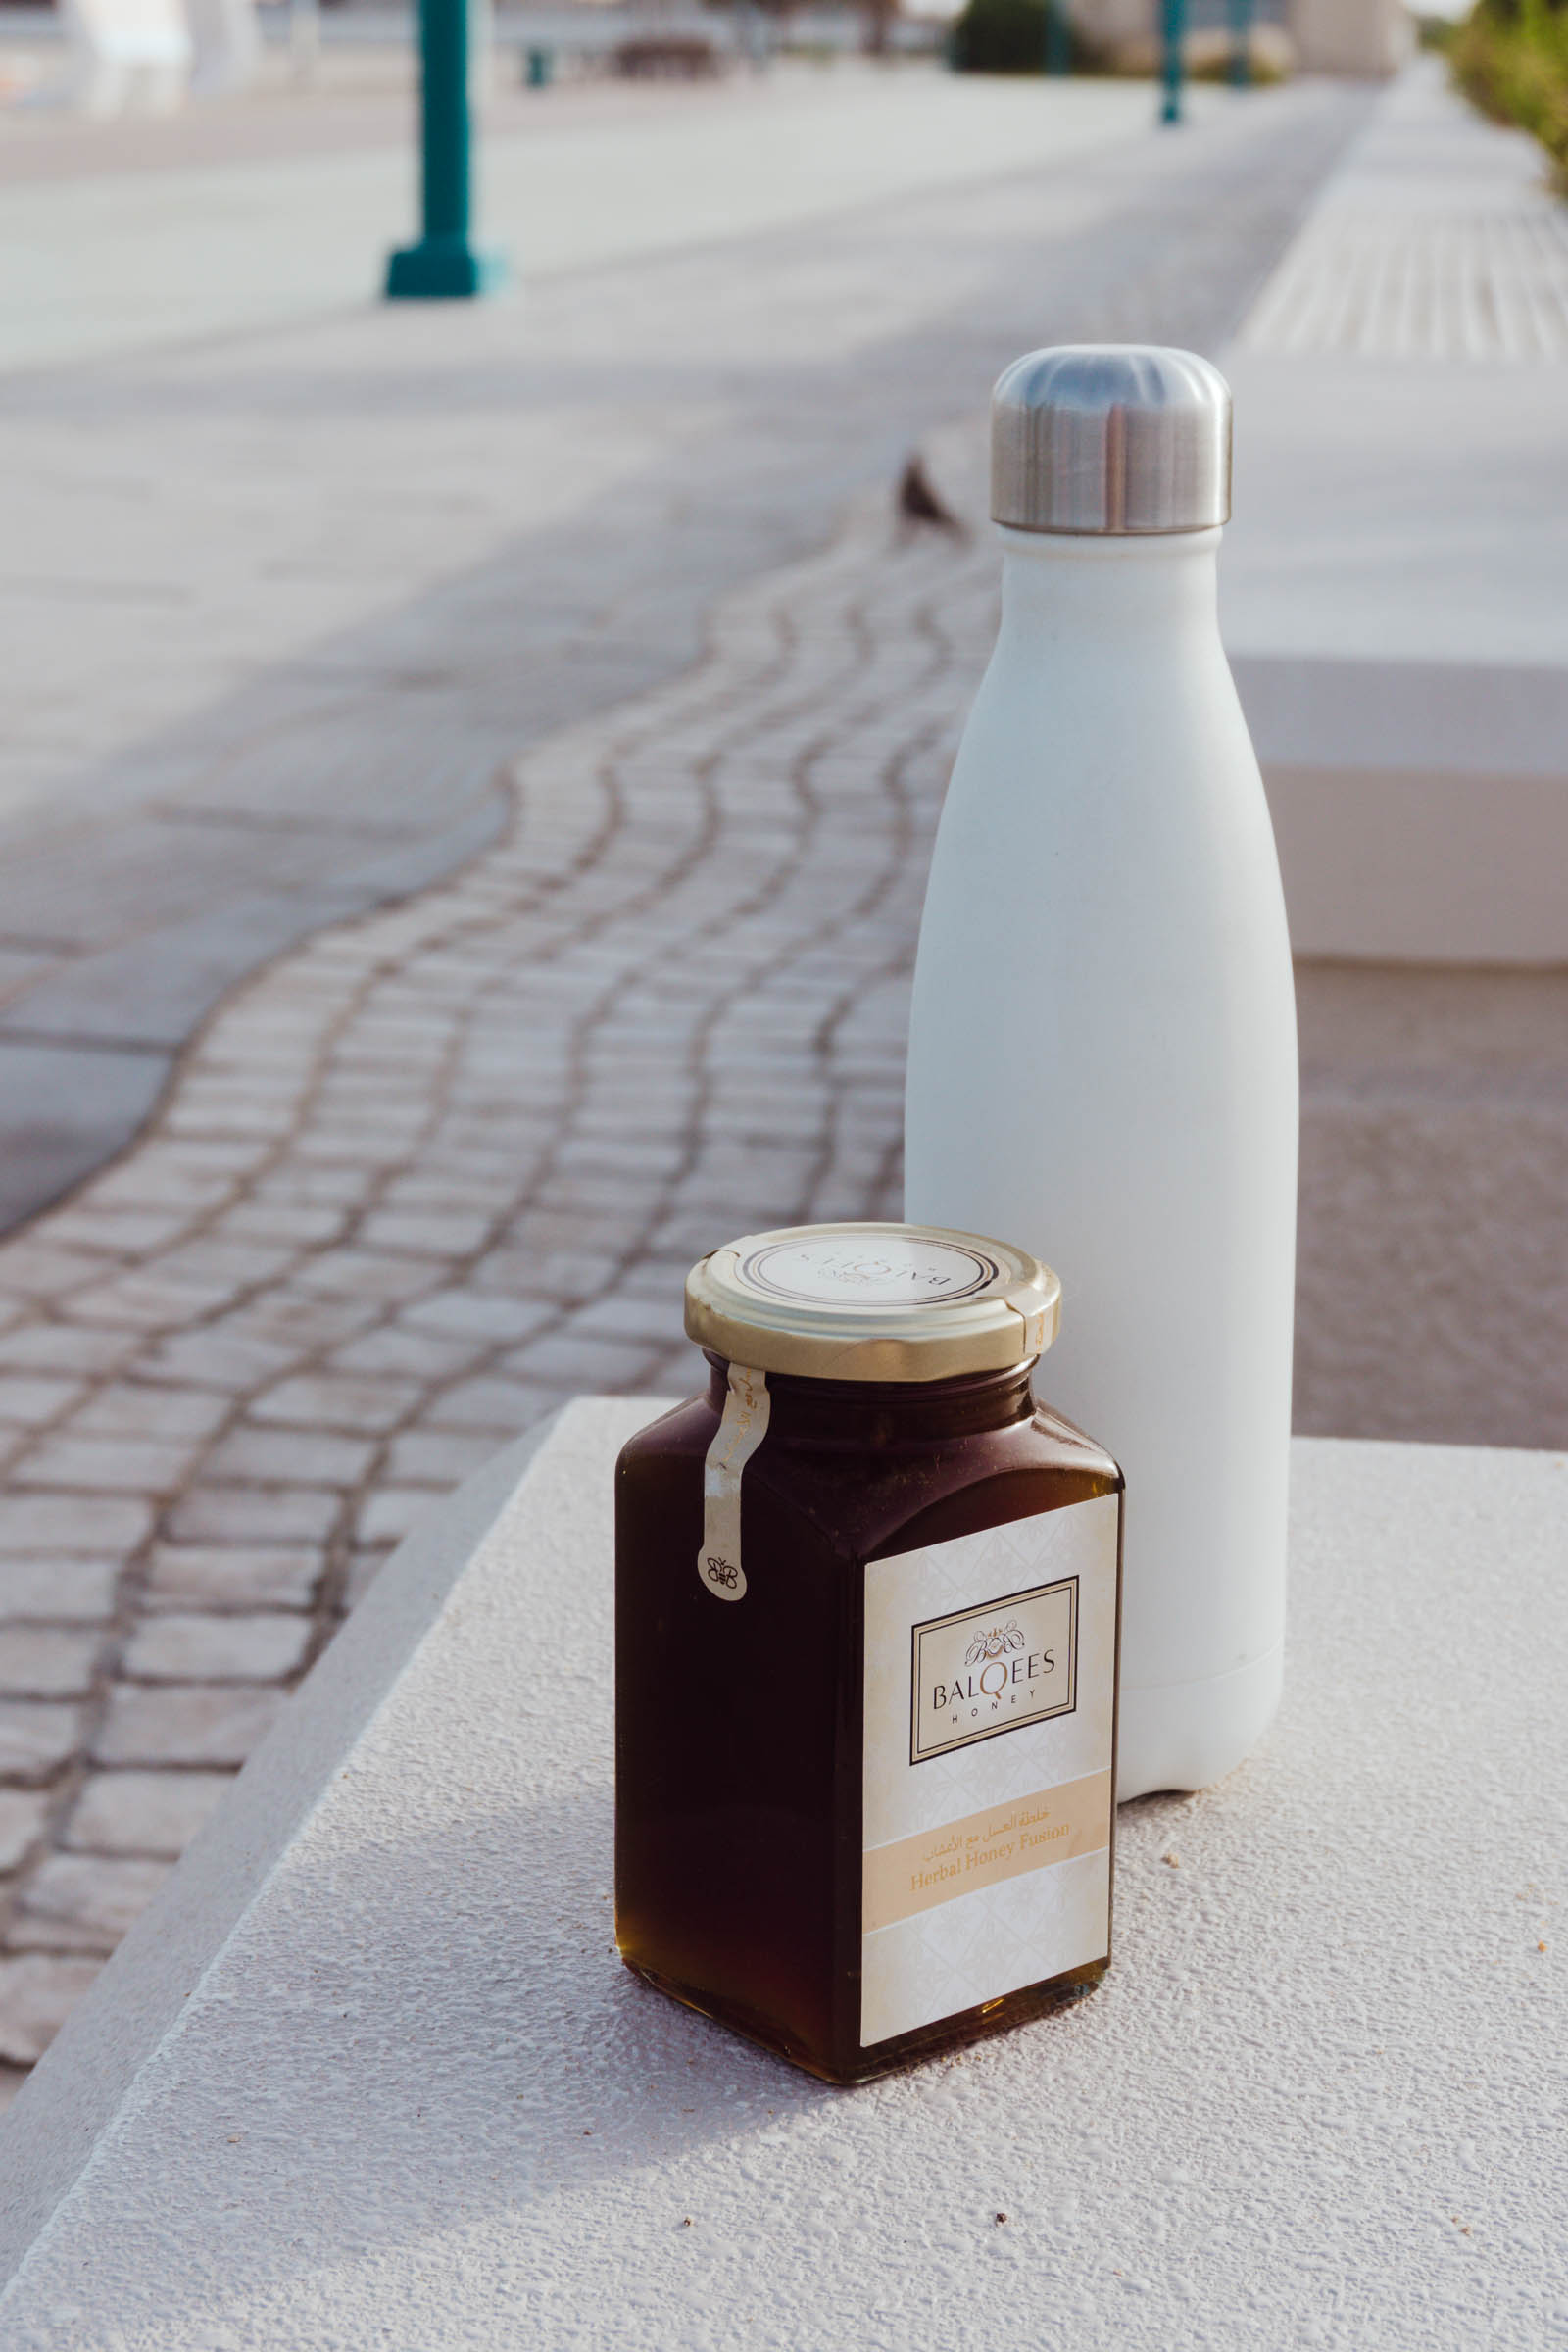 Raw honey with a water bottle by a running track